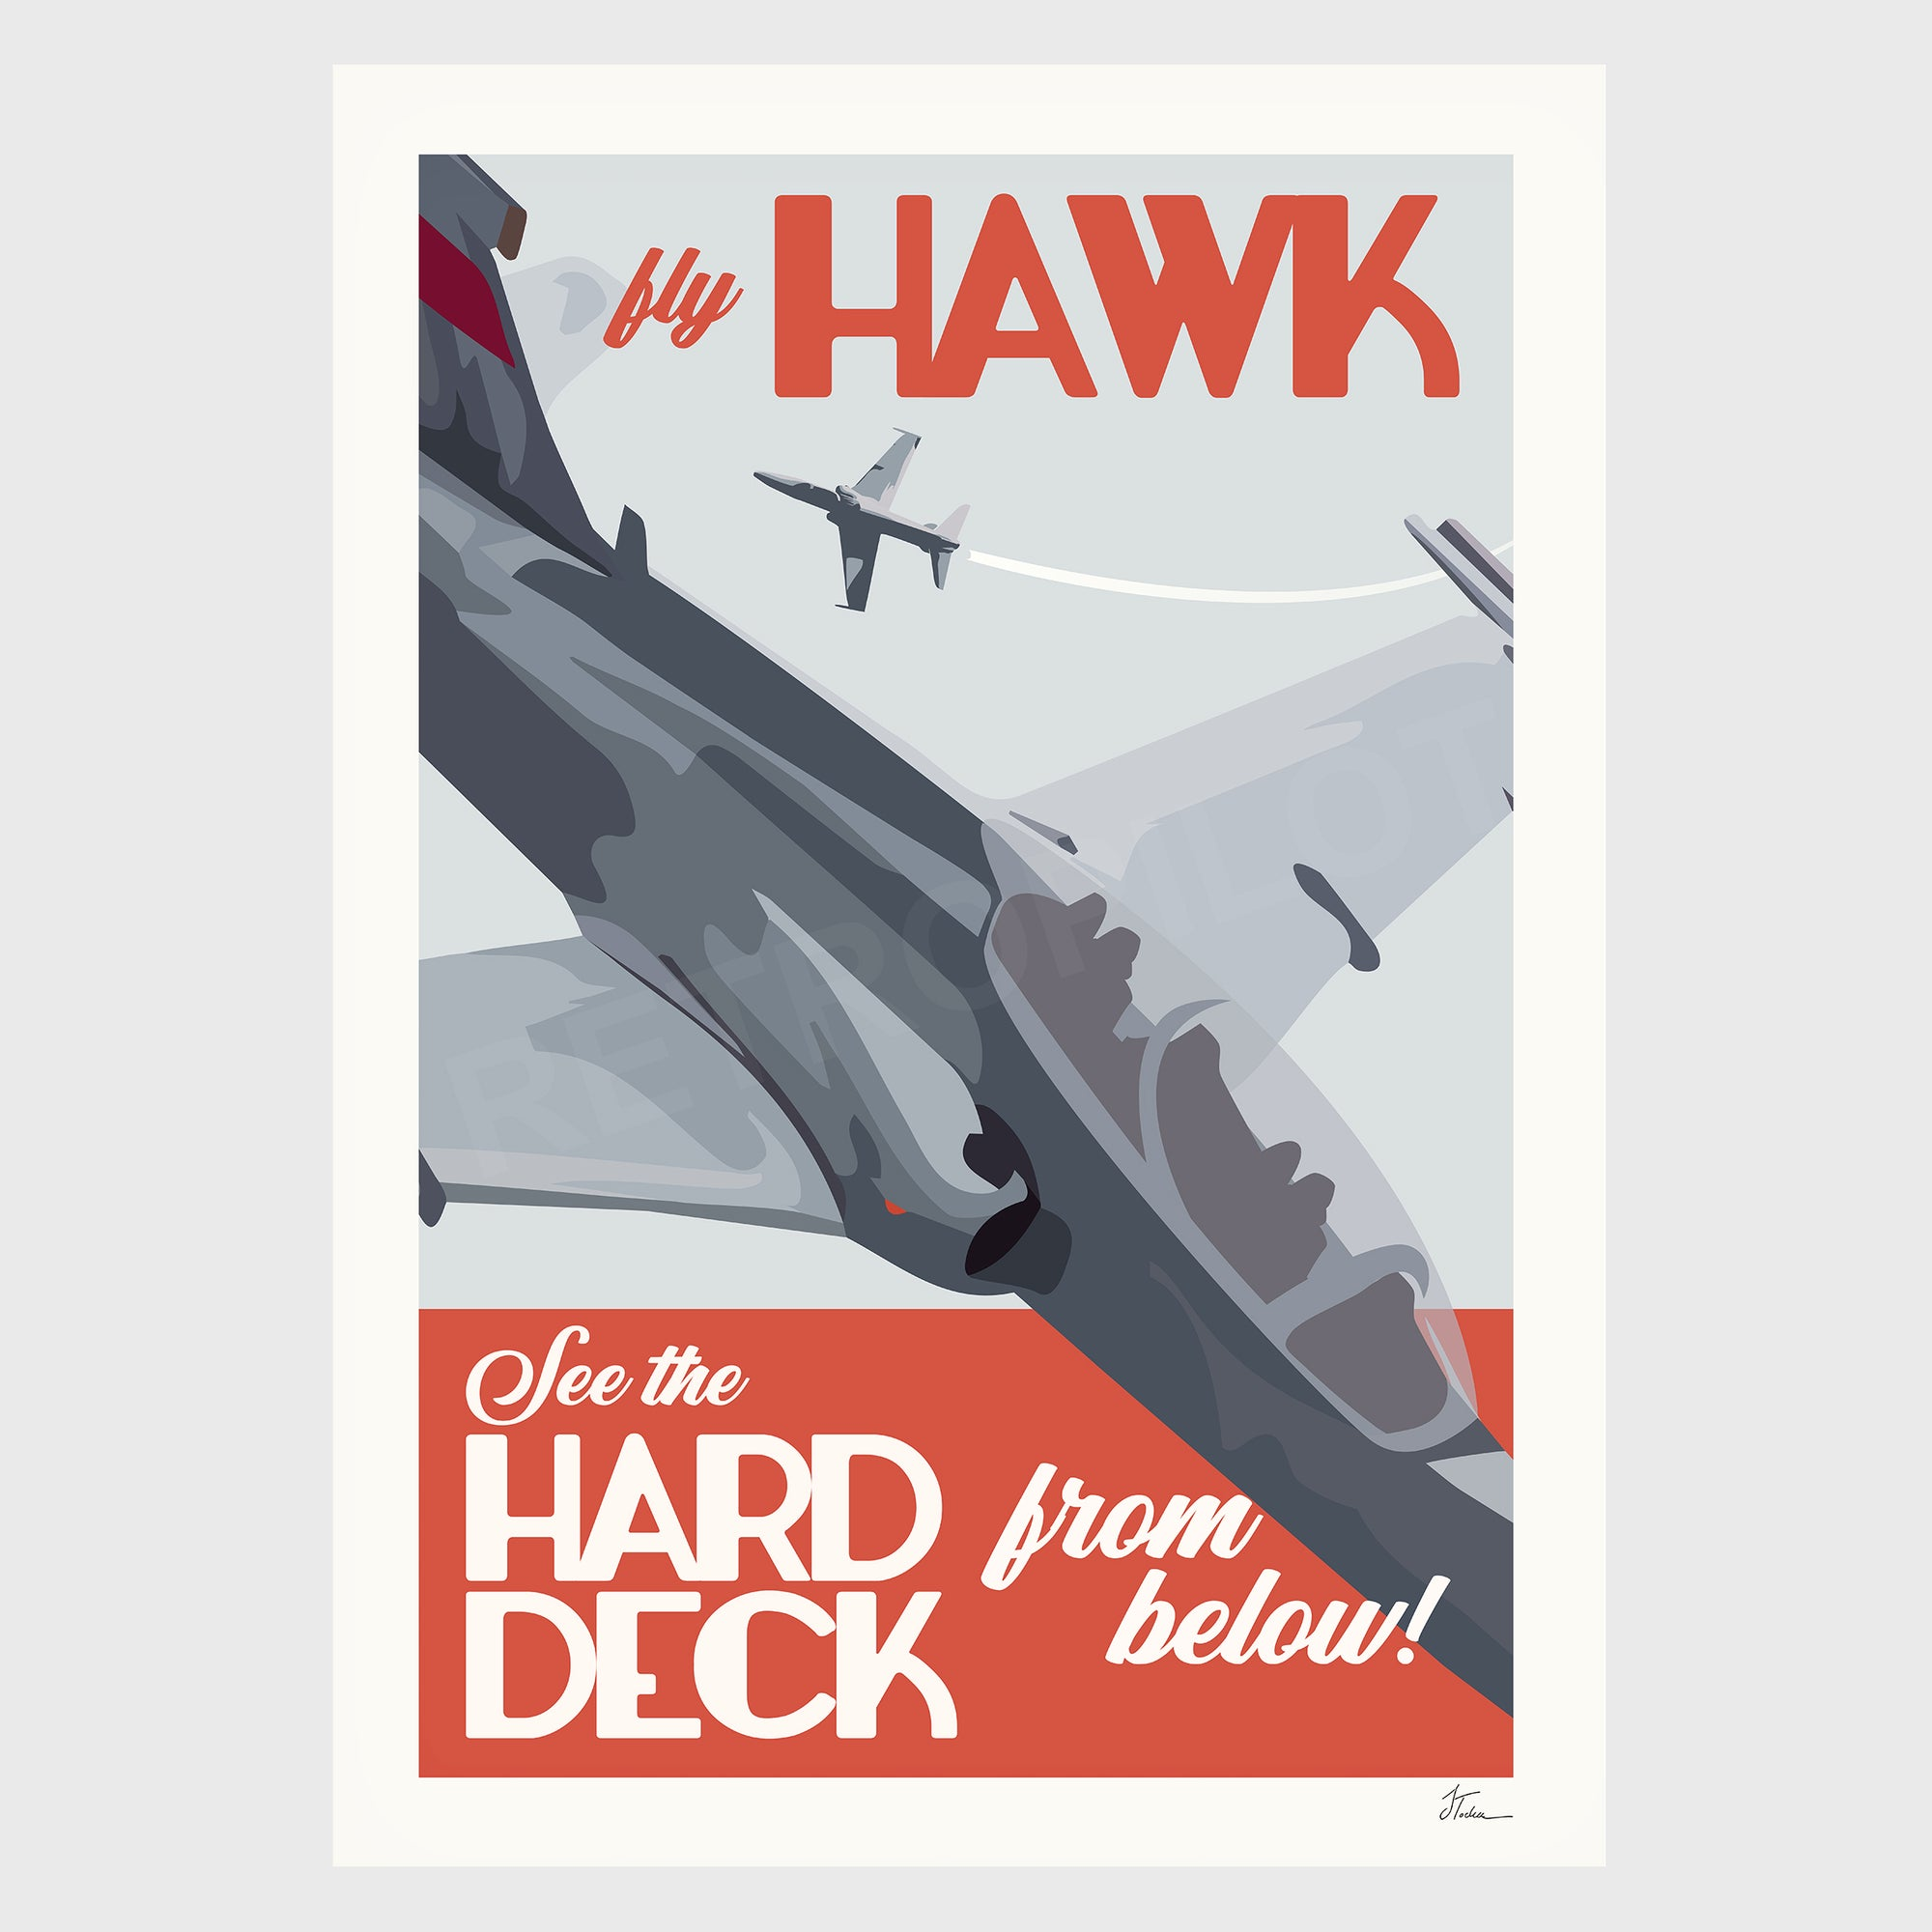 Hawk-127 - Hard Deck